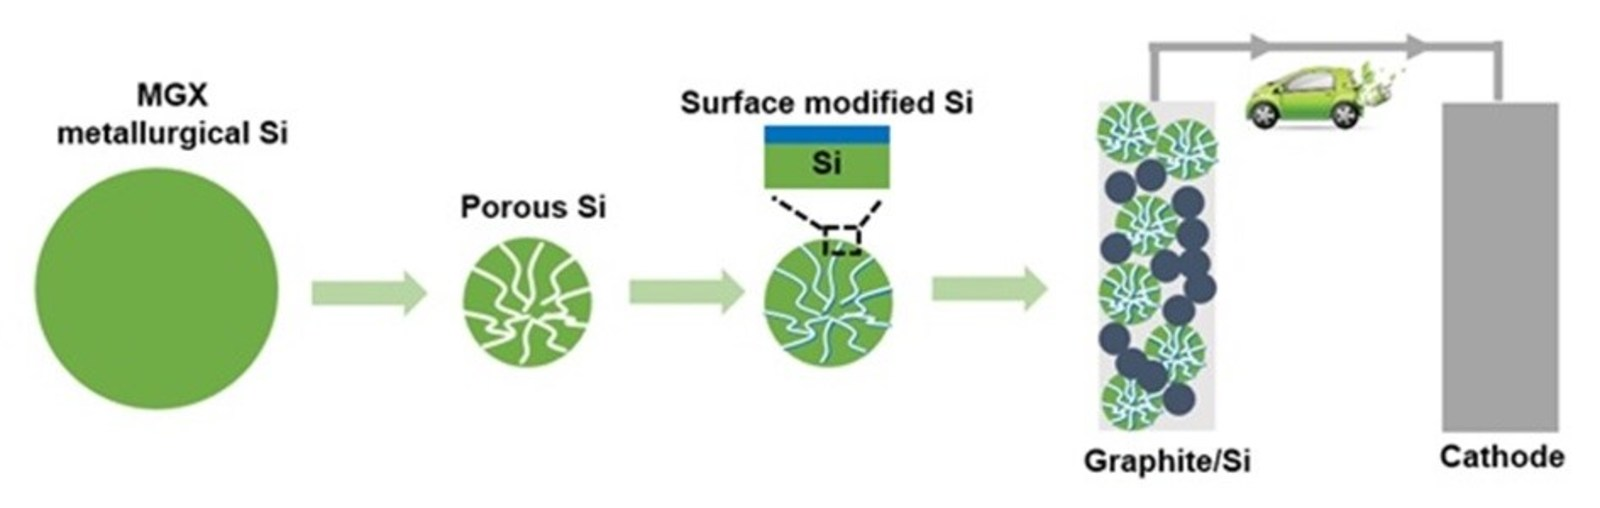 Figure 1. Fabrication and evaluation of Si-based anode for Li-ion batteries